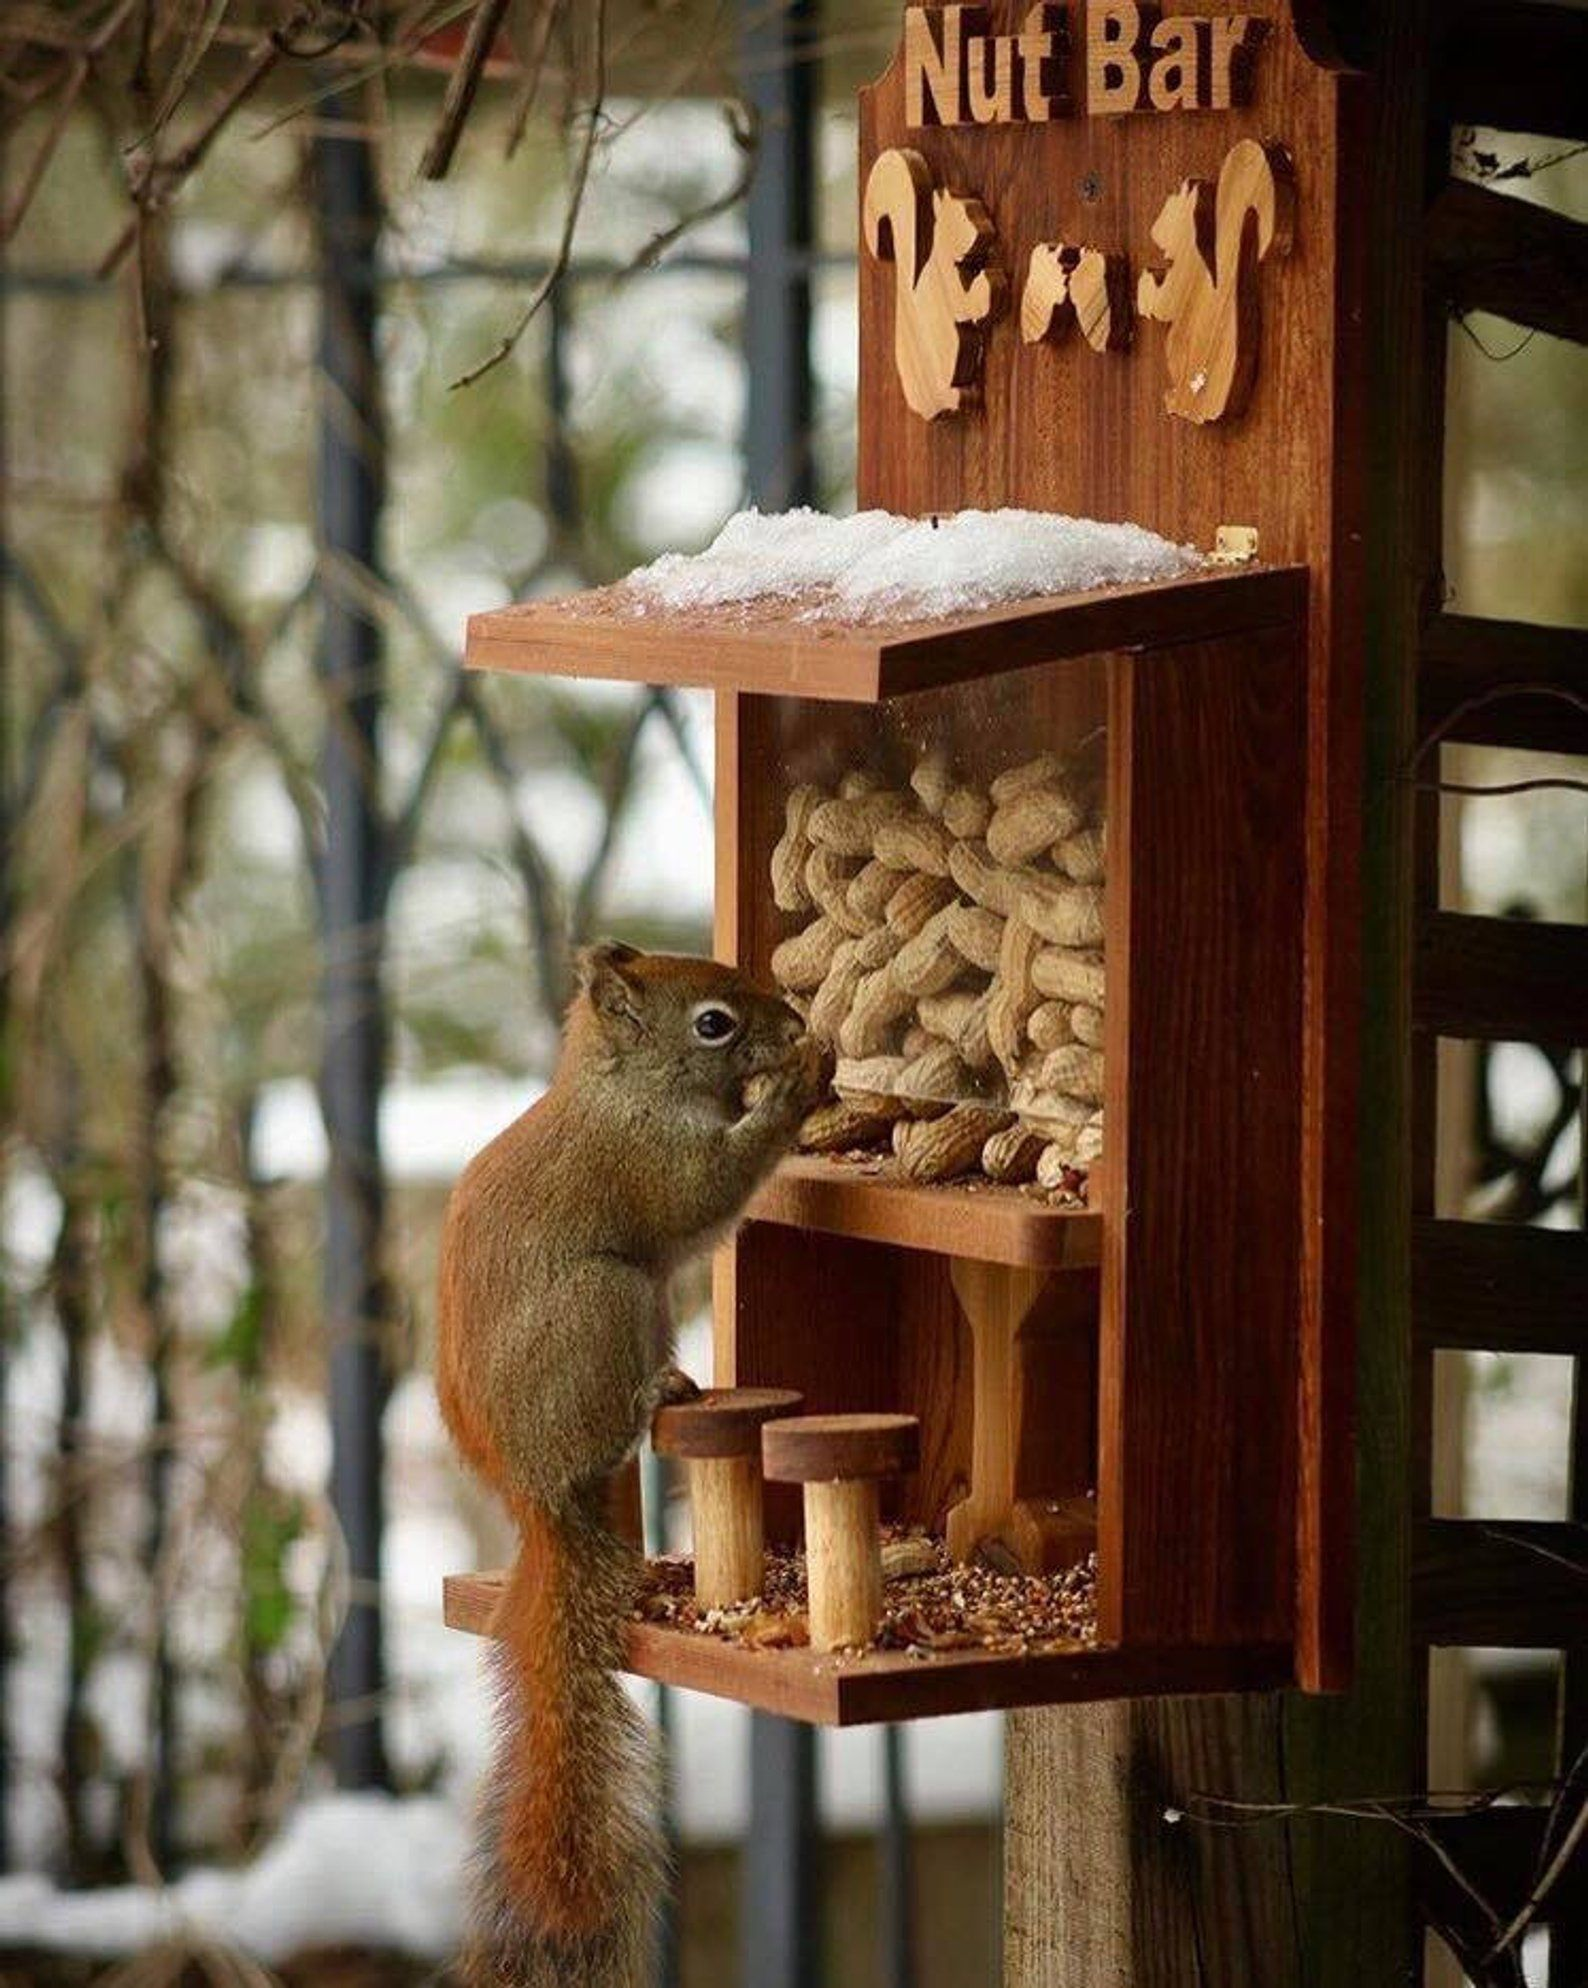 Nut Bar Squirrel Bird Feeder Etsy Wood Bird Feeder Squirrel Feeder Squirrel Feeder Diy